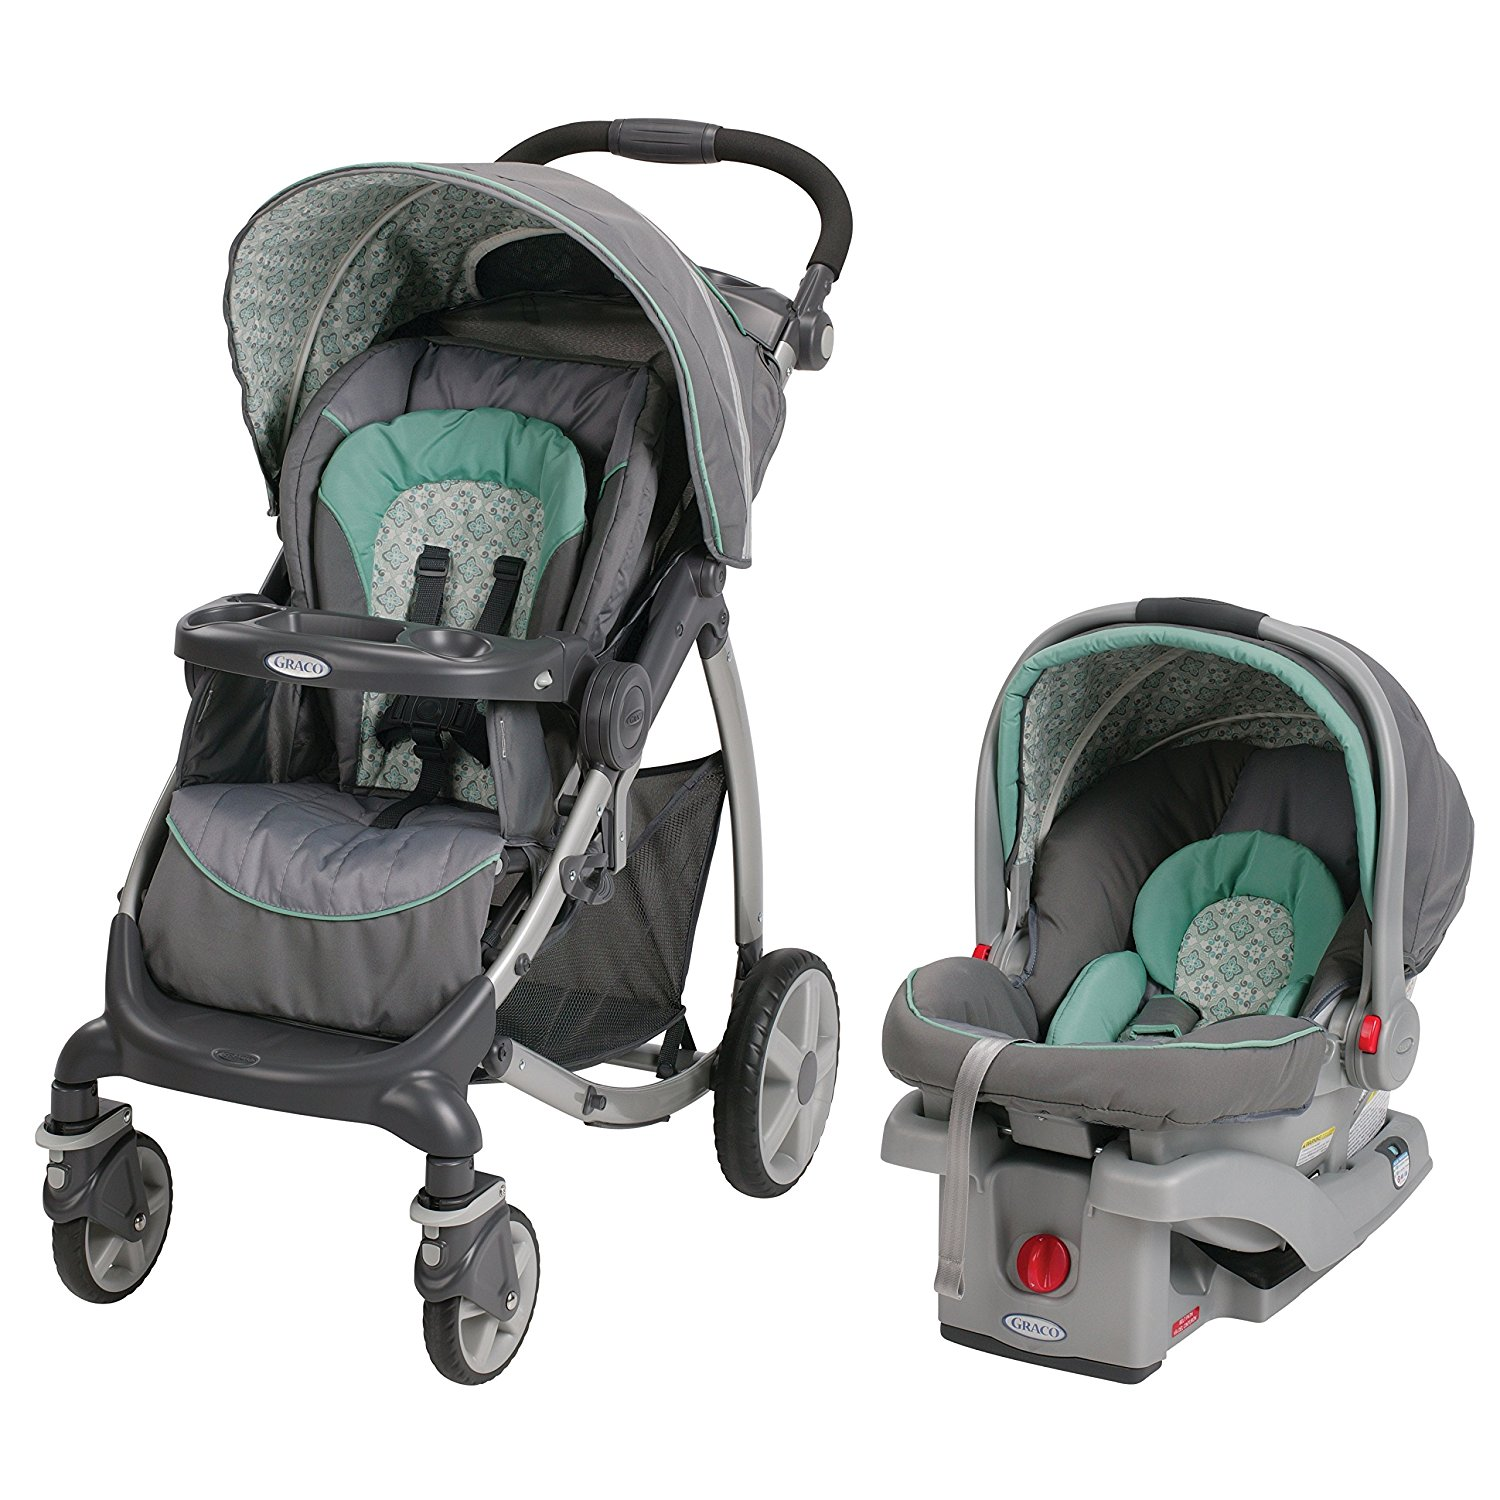 Graco Stylus Connect Travel System $299 99